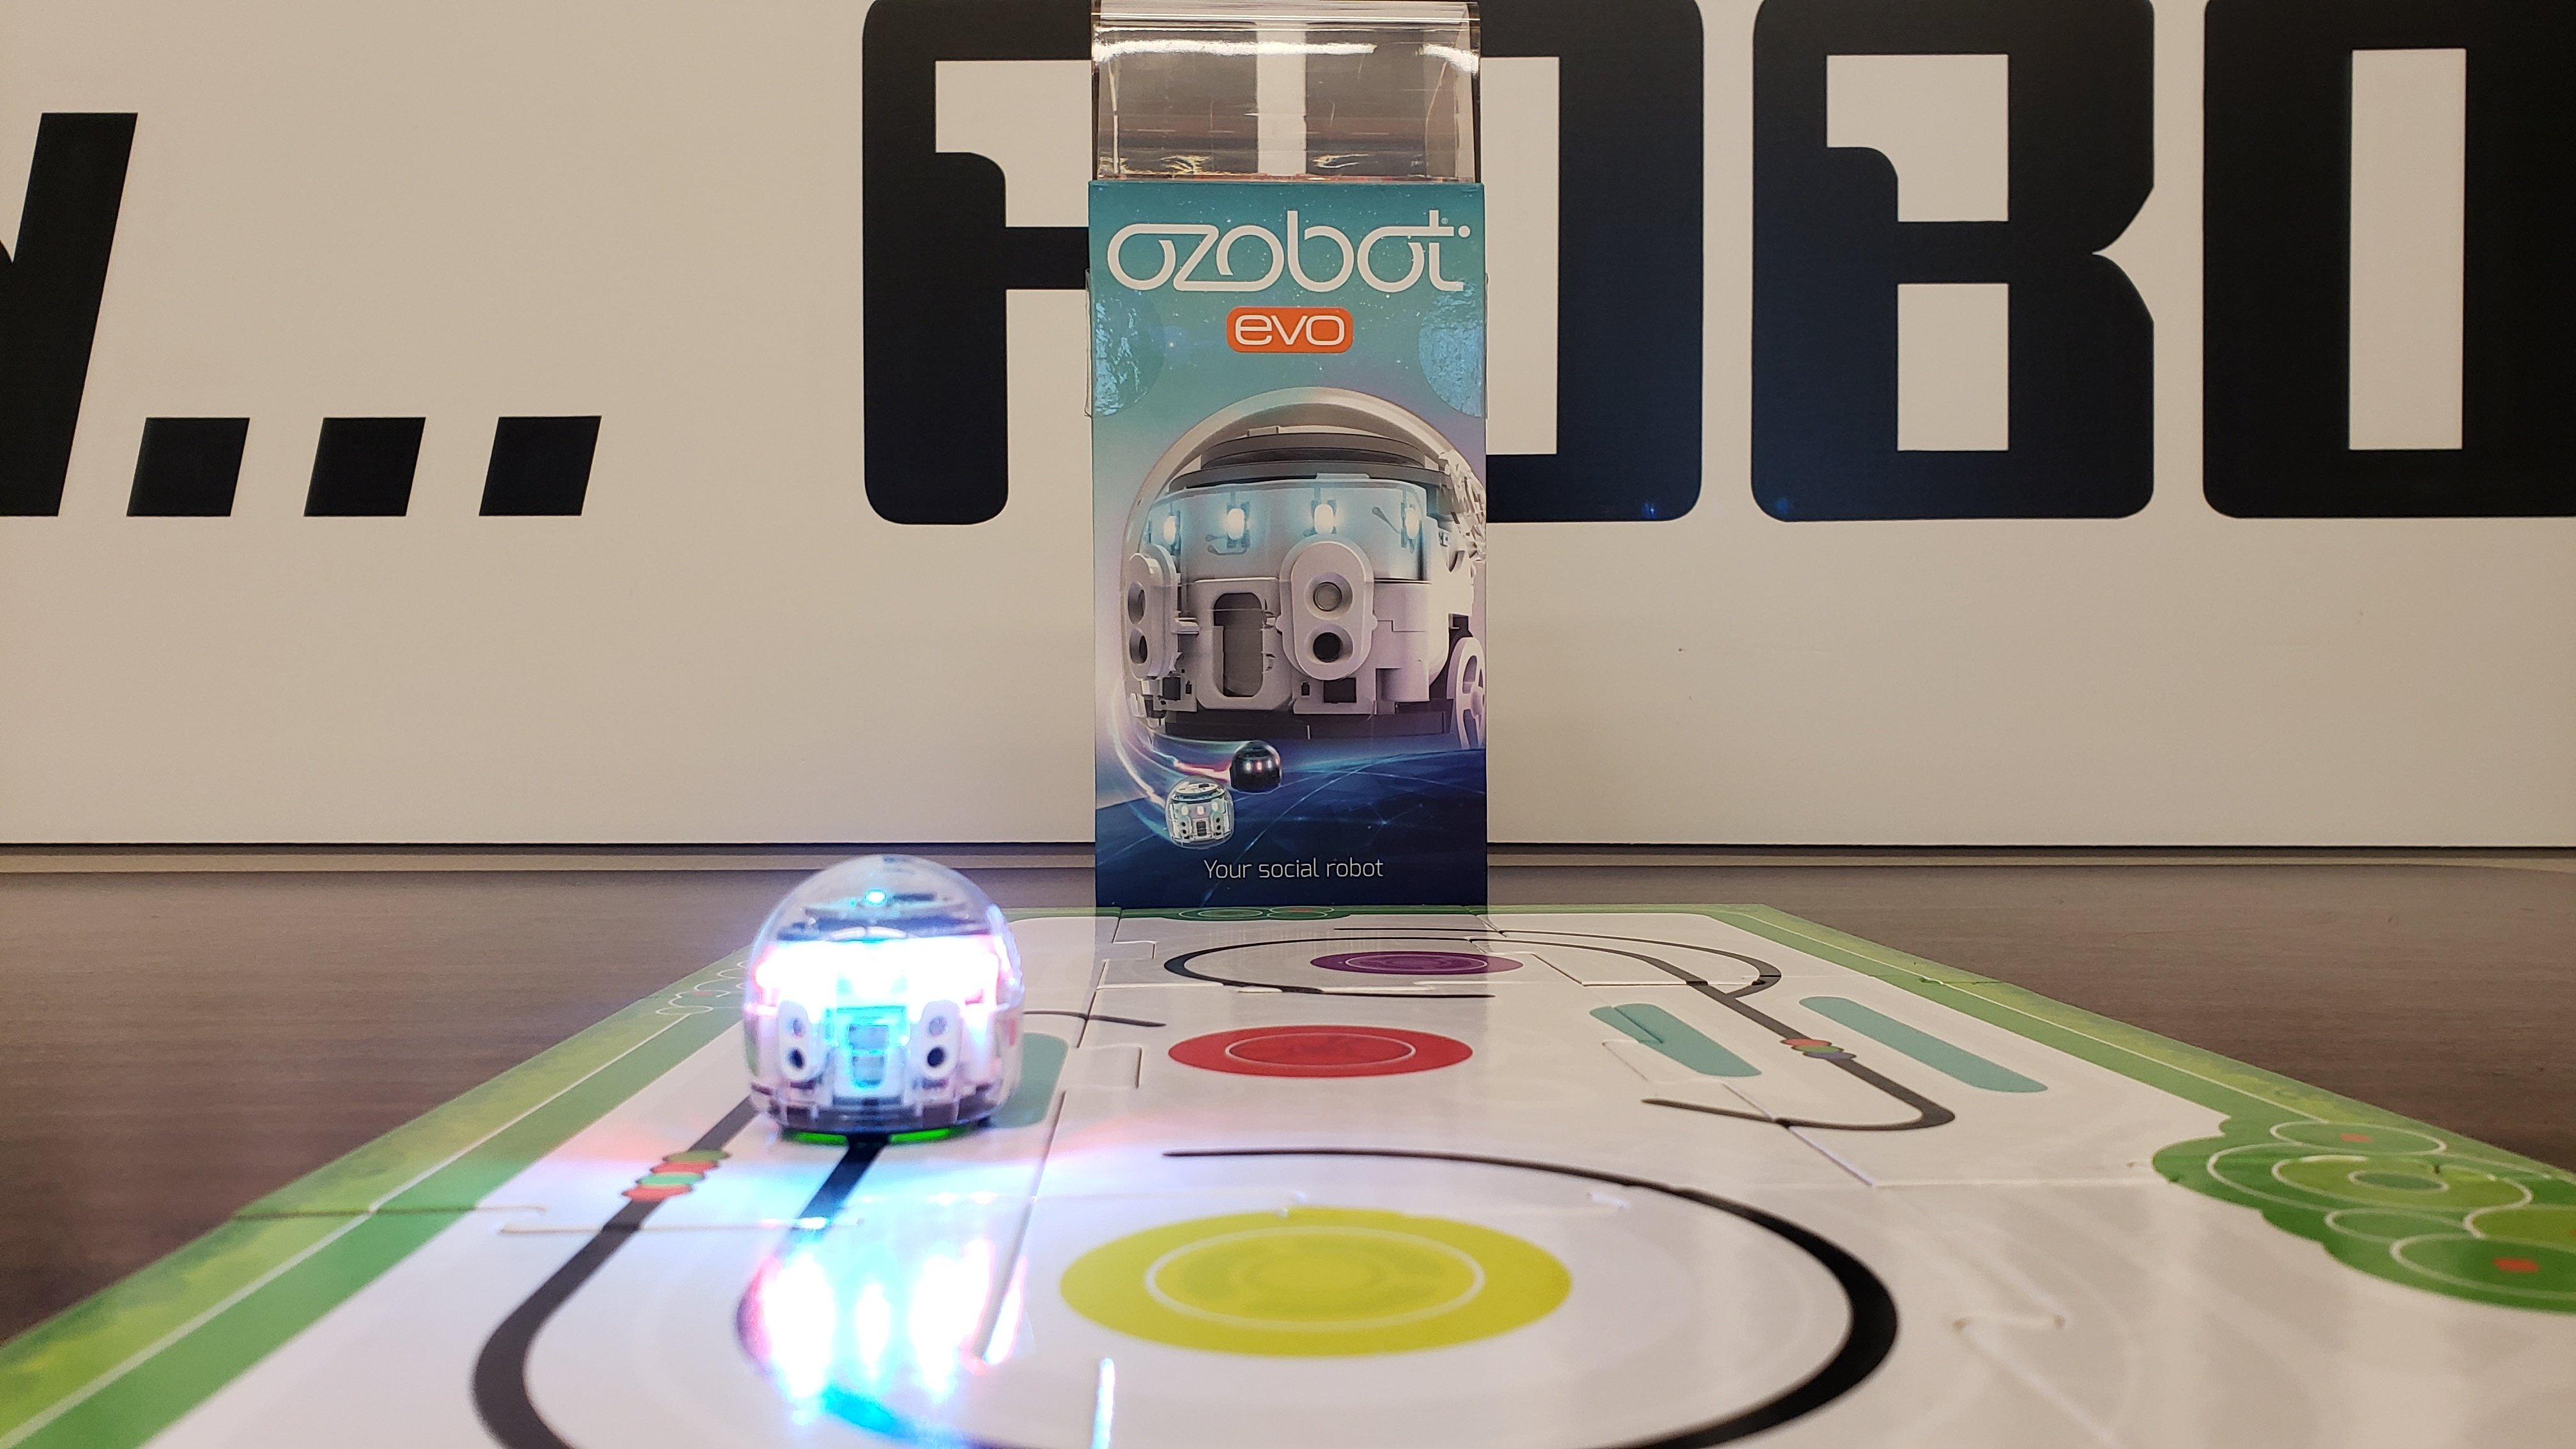 Coding Robot: Ozobot Evo. Ages 8 and up. 1 User.